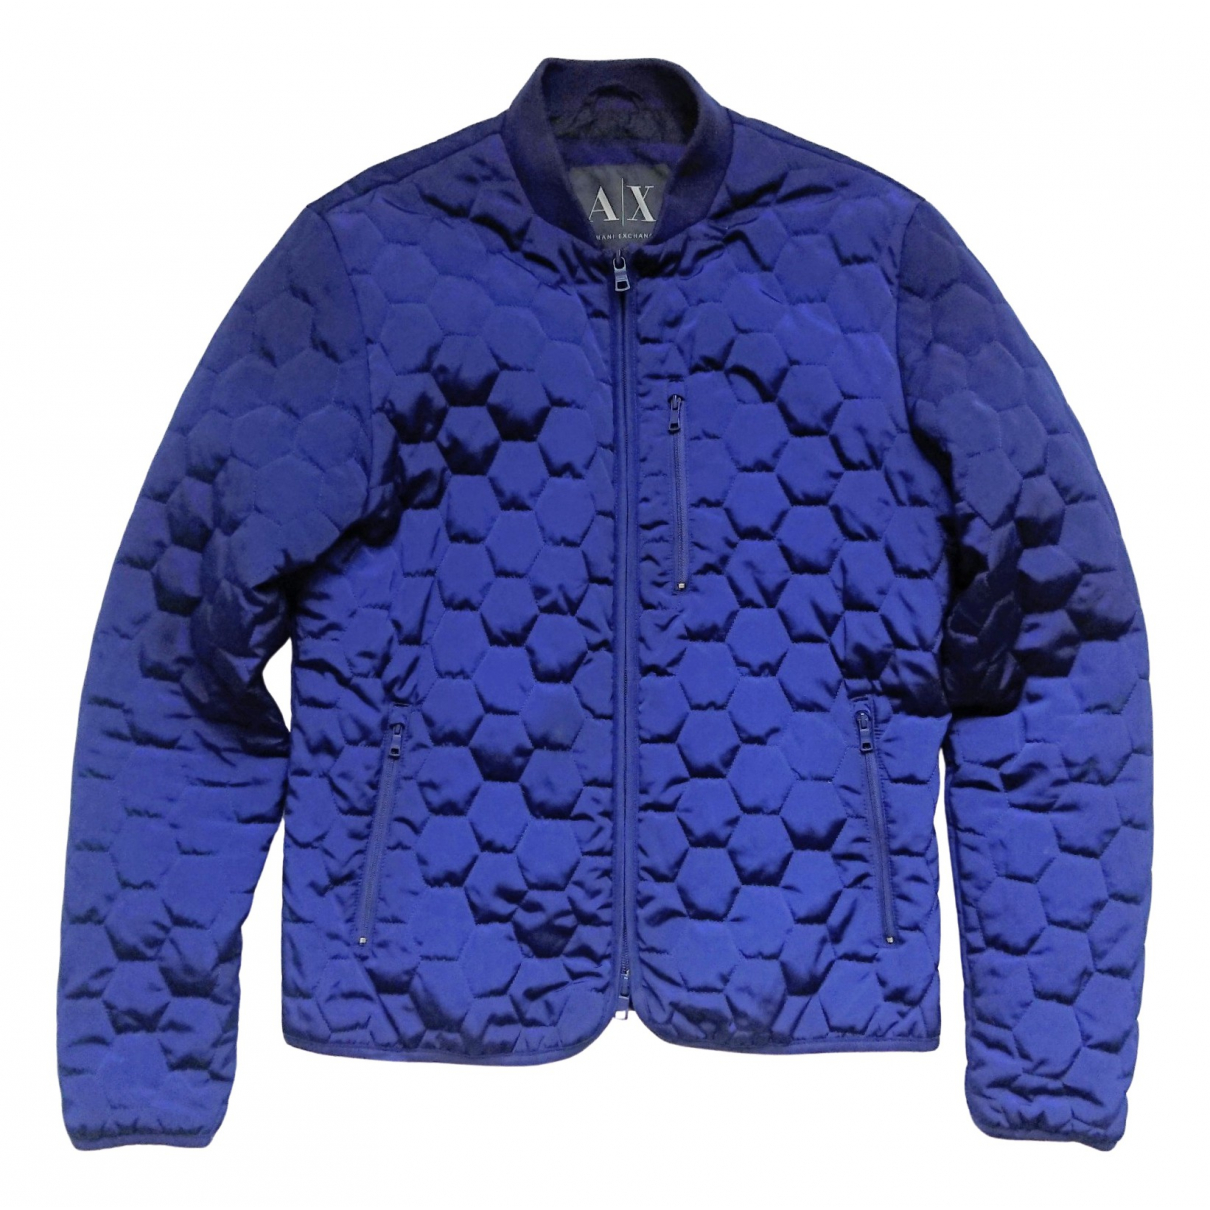 Emporio Armani \N Blue jacket for Women M International